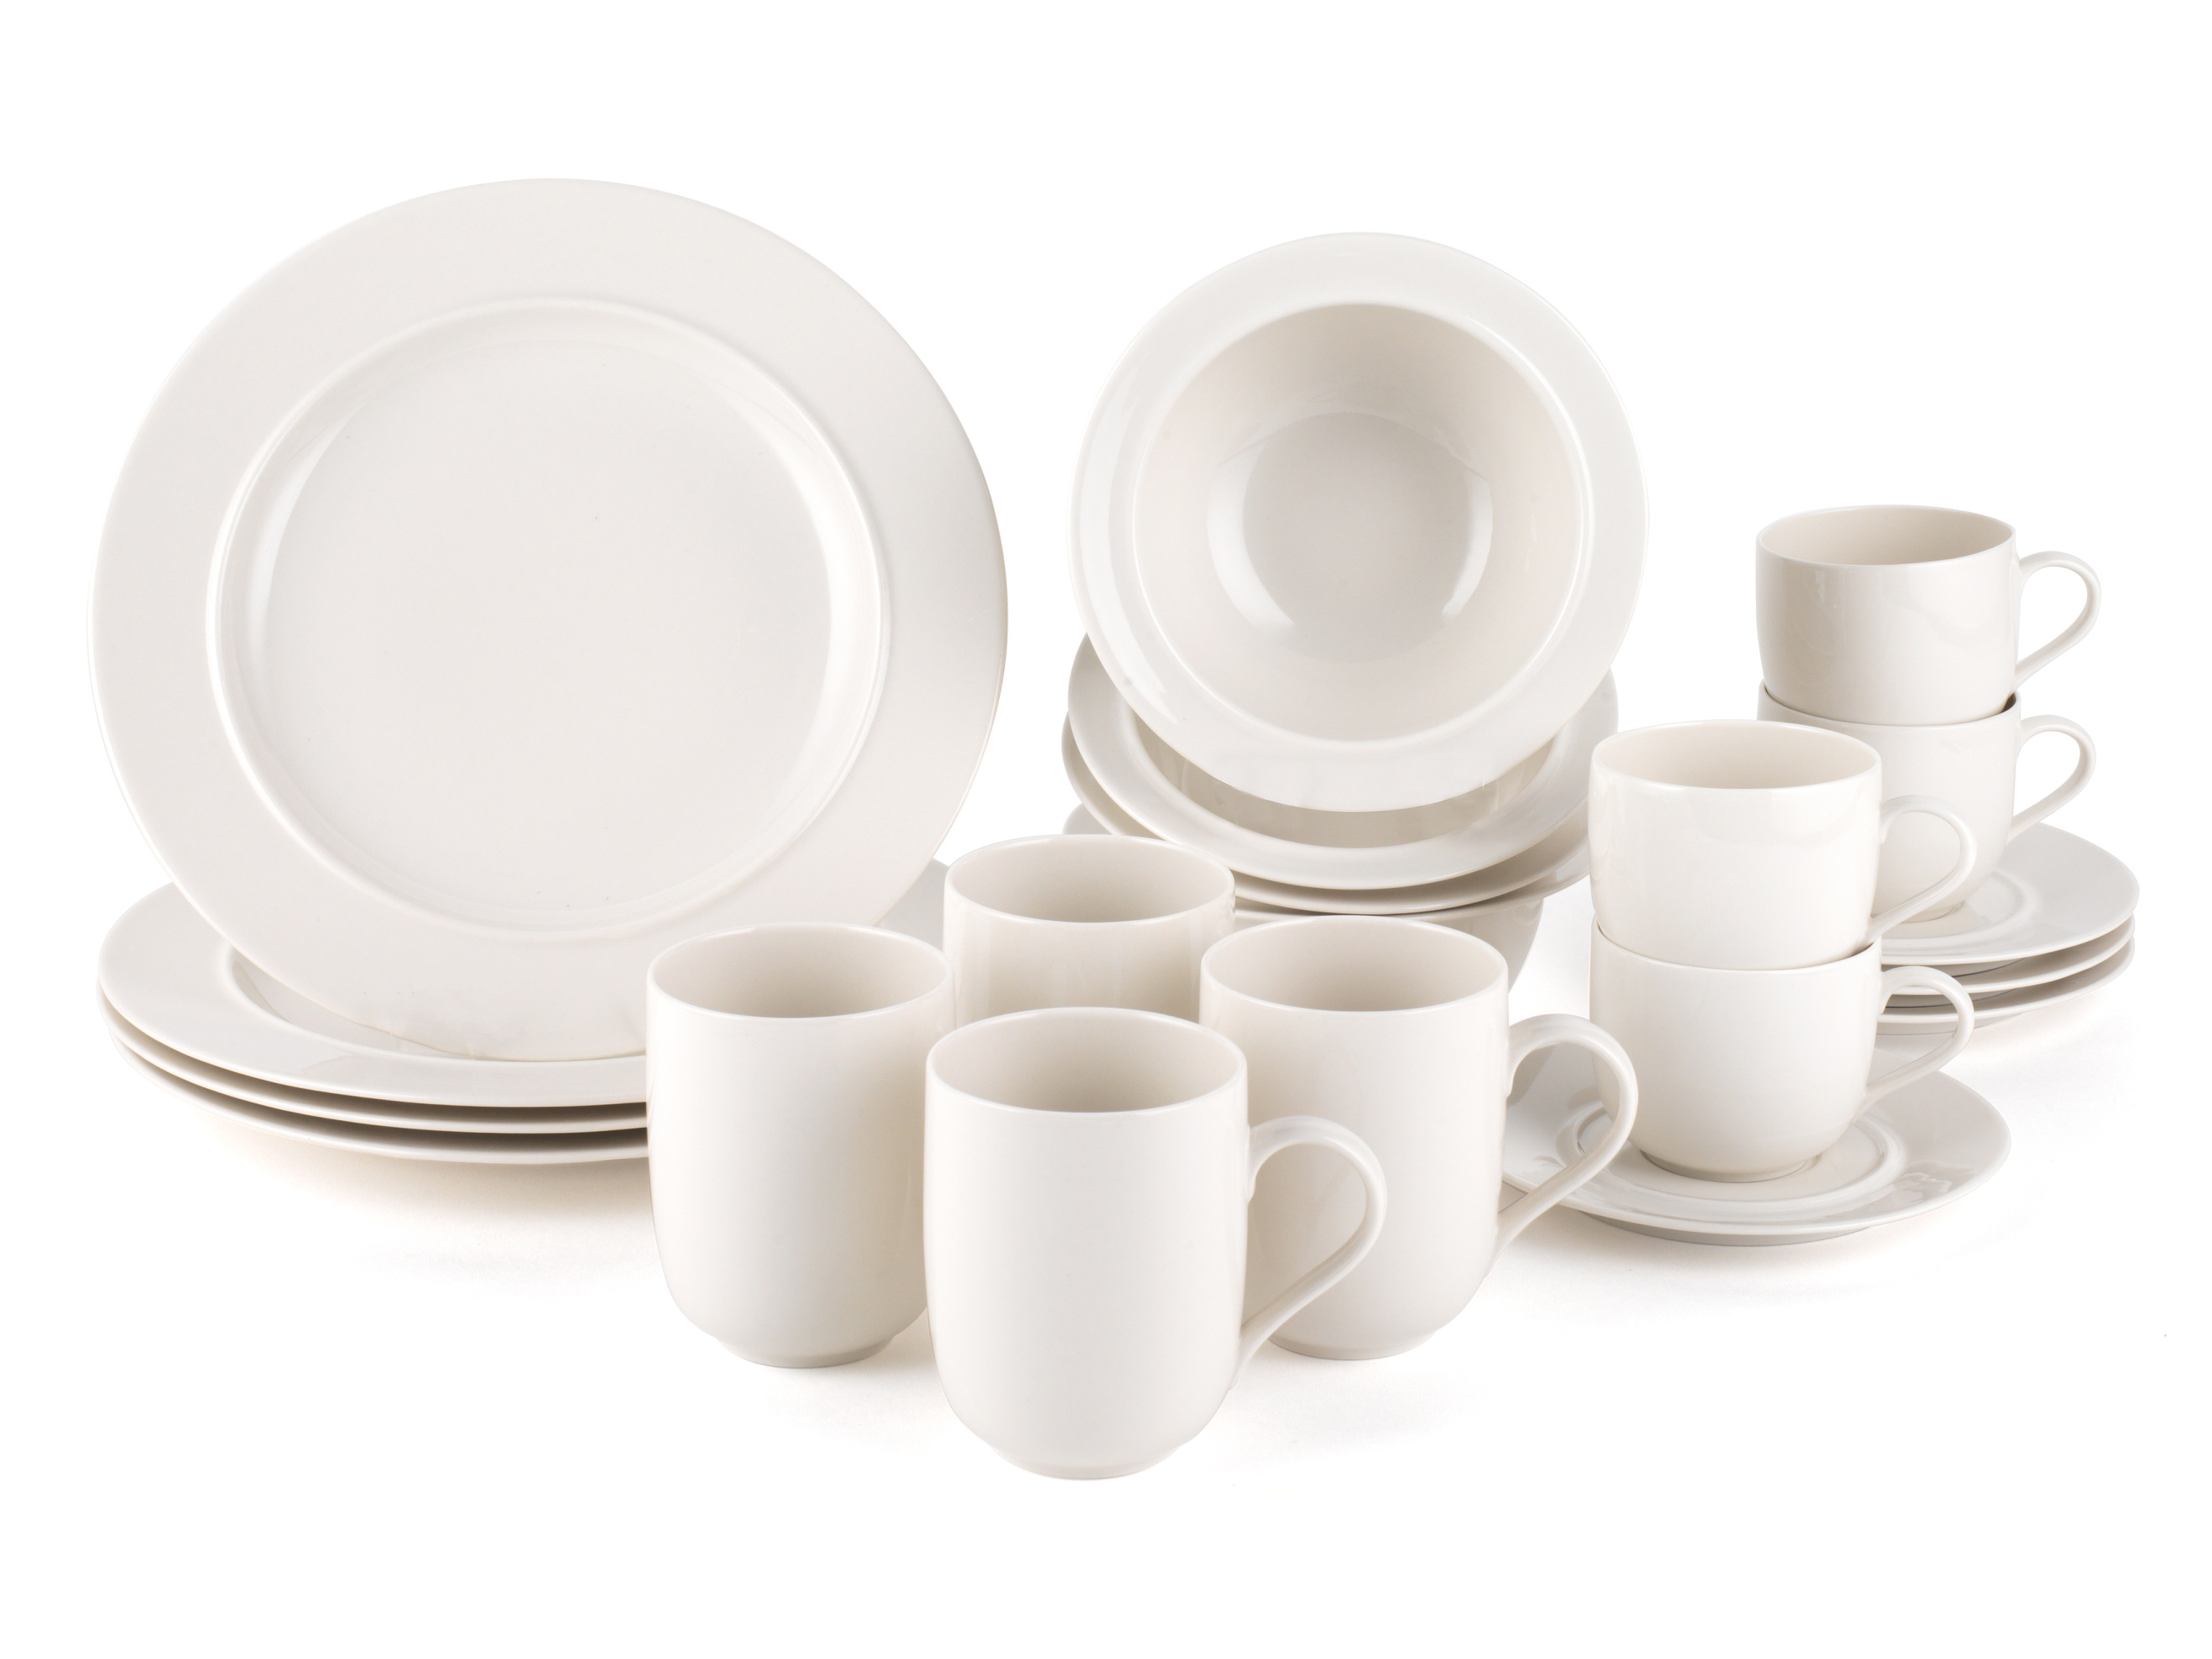 Alessi La Bella Tavola Porcelain 4-Place Setting Breakfast and Dinner Dining Set  sc 1 st  No1Brands4You & Alessi La Bella Tavola Porcelain 4-Place Setting Breakfast and ...